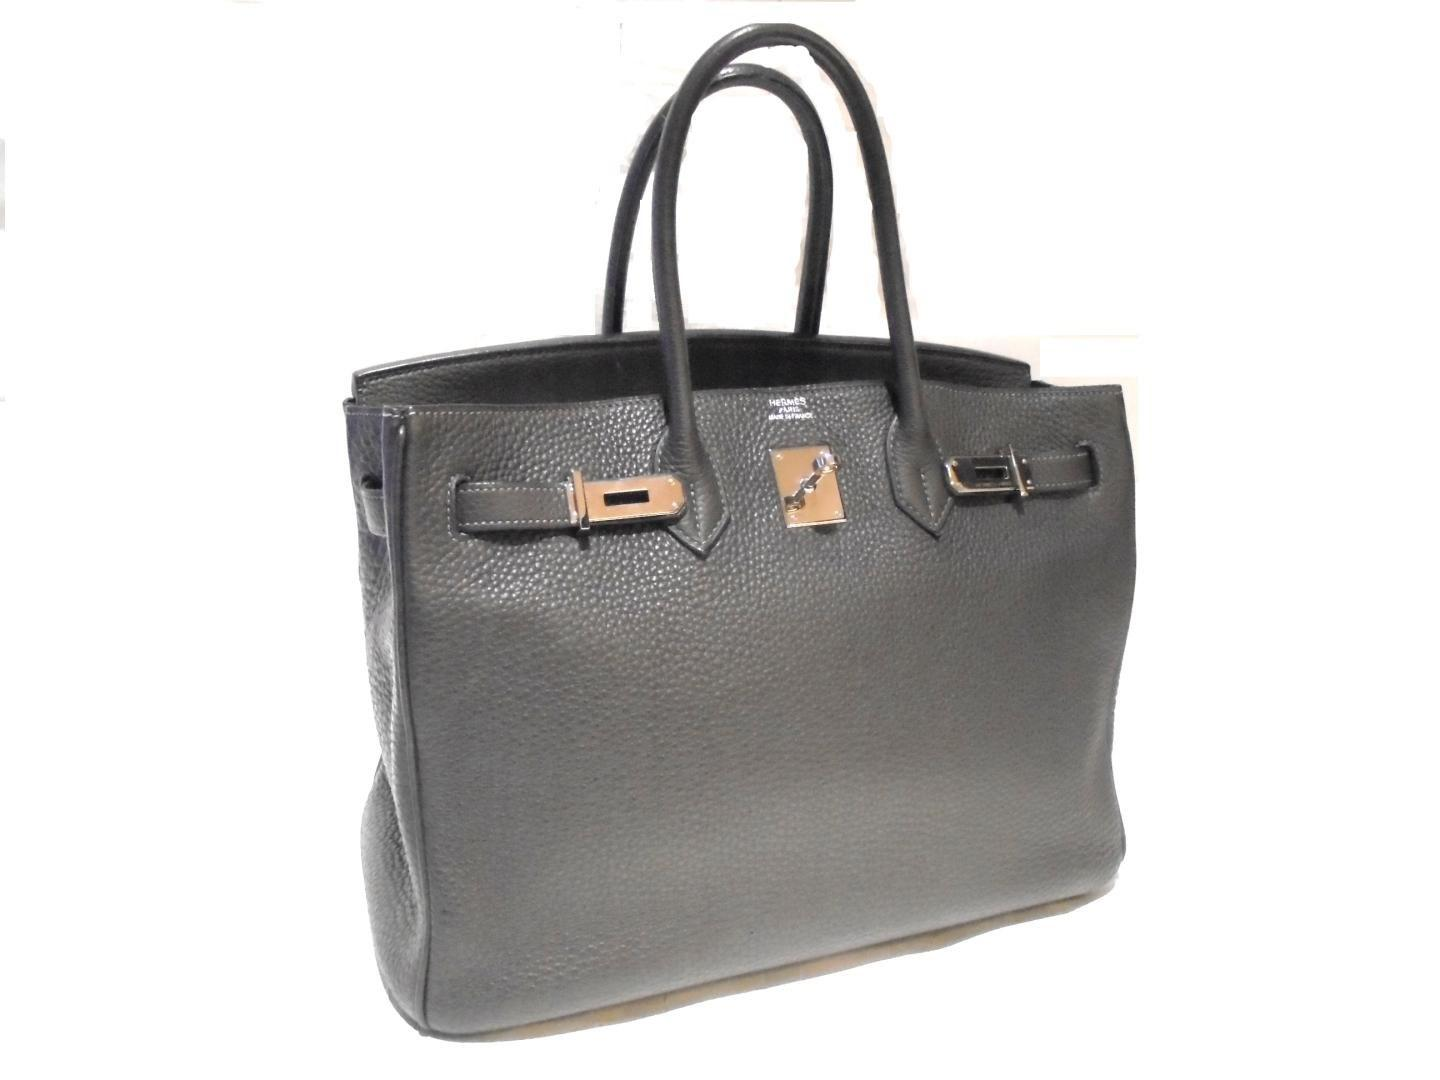 d7cf6778cd Lyst - Hermès Birkin 35 Handbag Totebag Clemence Leather Graphite ...